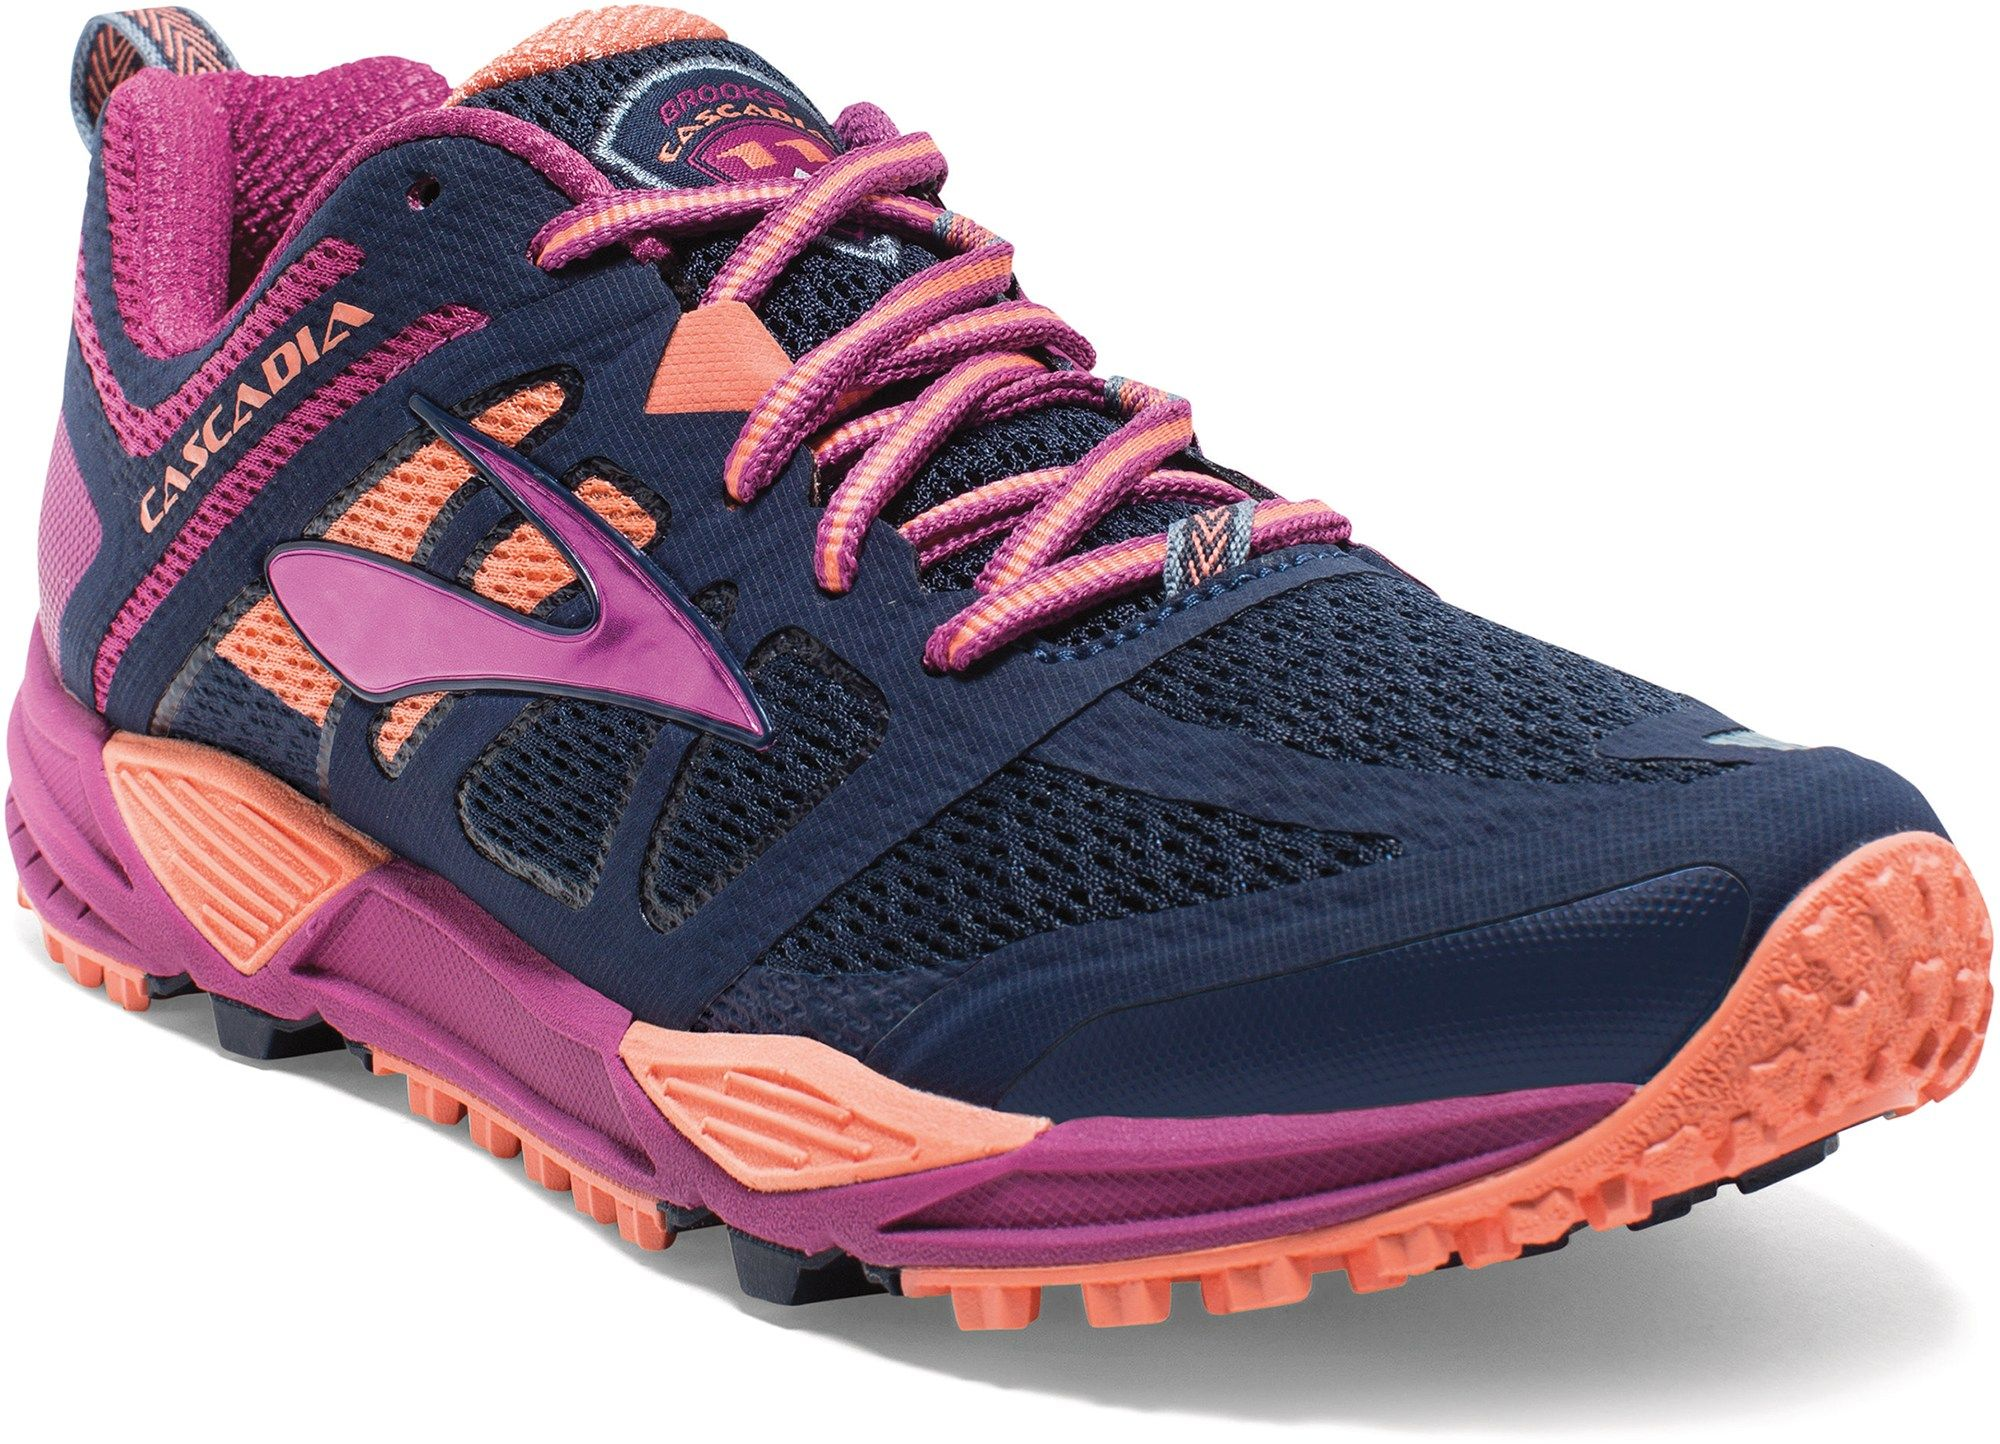 Running Trail Shoes Accessories 11 Cascadia Women'sapparelamp; vwyNnm80OP